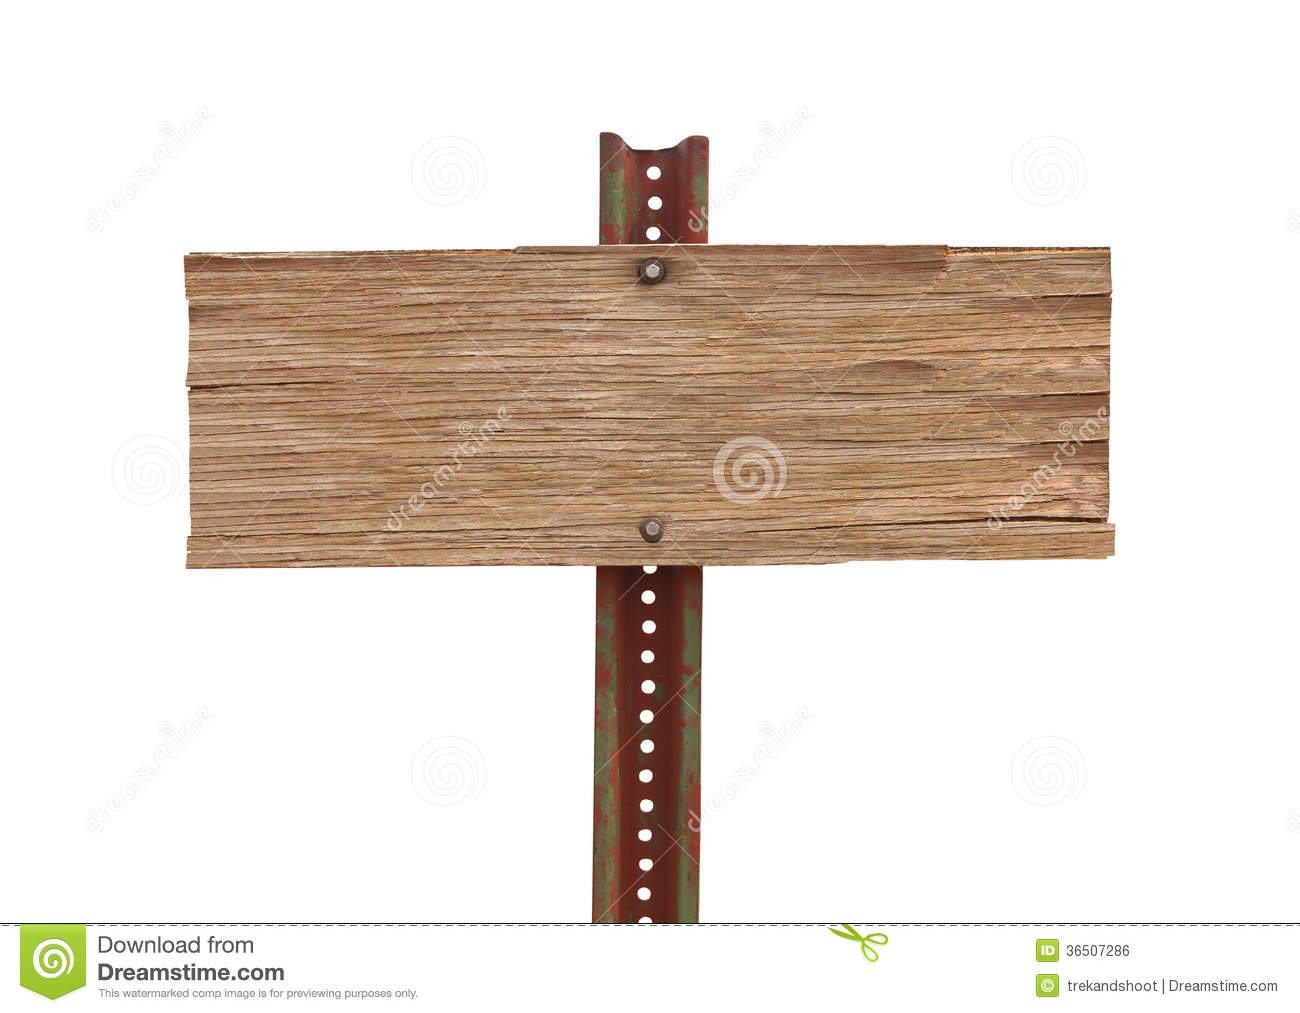 354 Blank Wooden Sign Trail Photos Free Royalty Free Stock Photos From Dreamstime